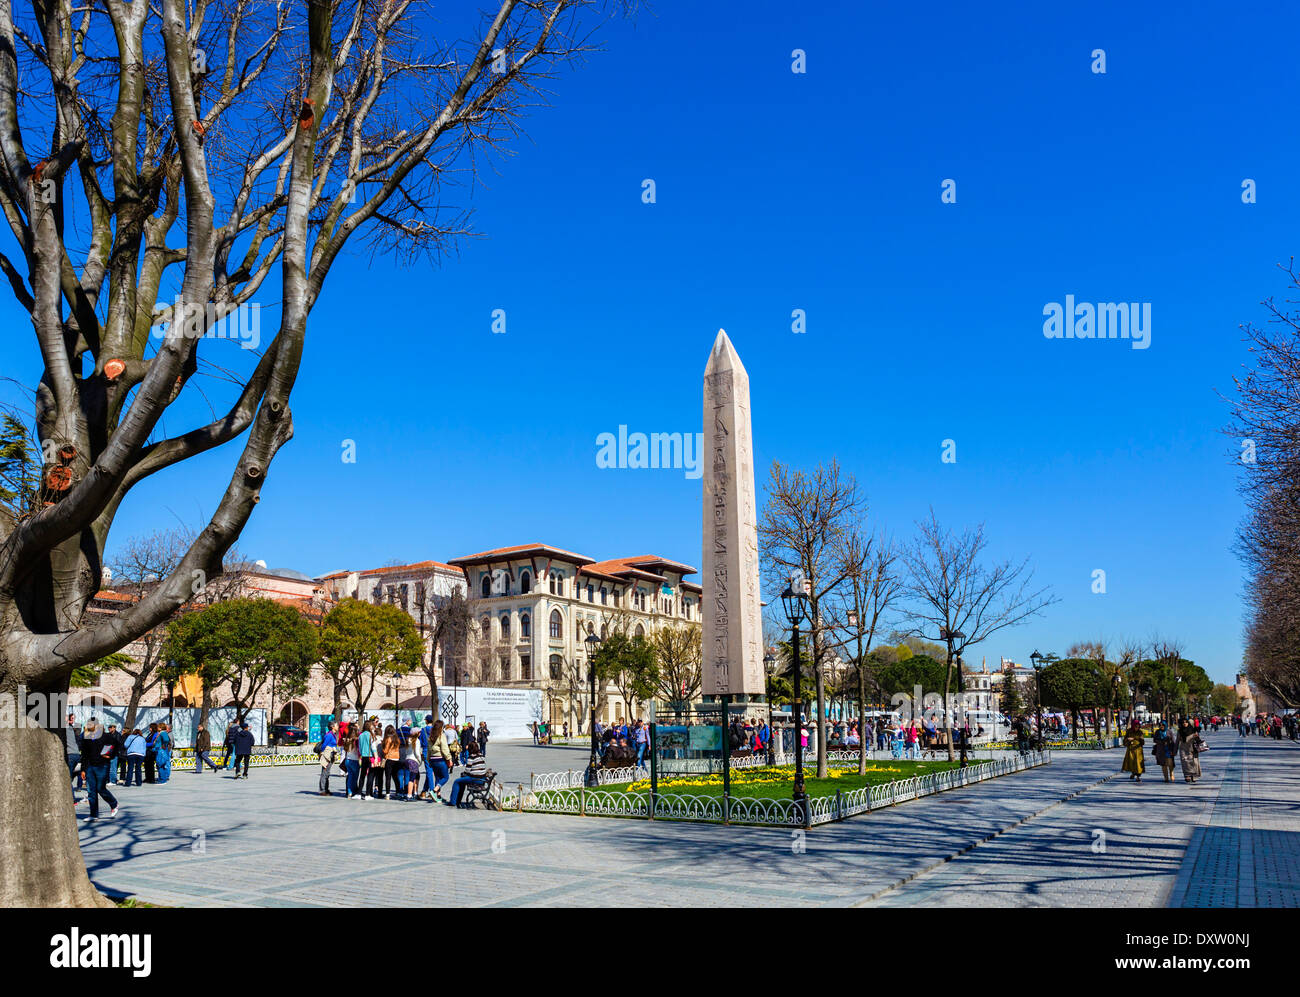 View down the Hippodrome (At Meydani)  with the Egyptian Obelisk in the foreground, Sultanahmet district, Istanbul,Turkey - Stock Image